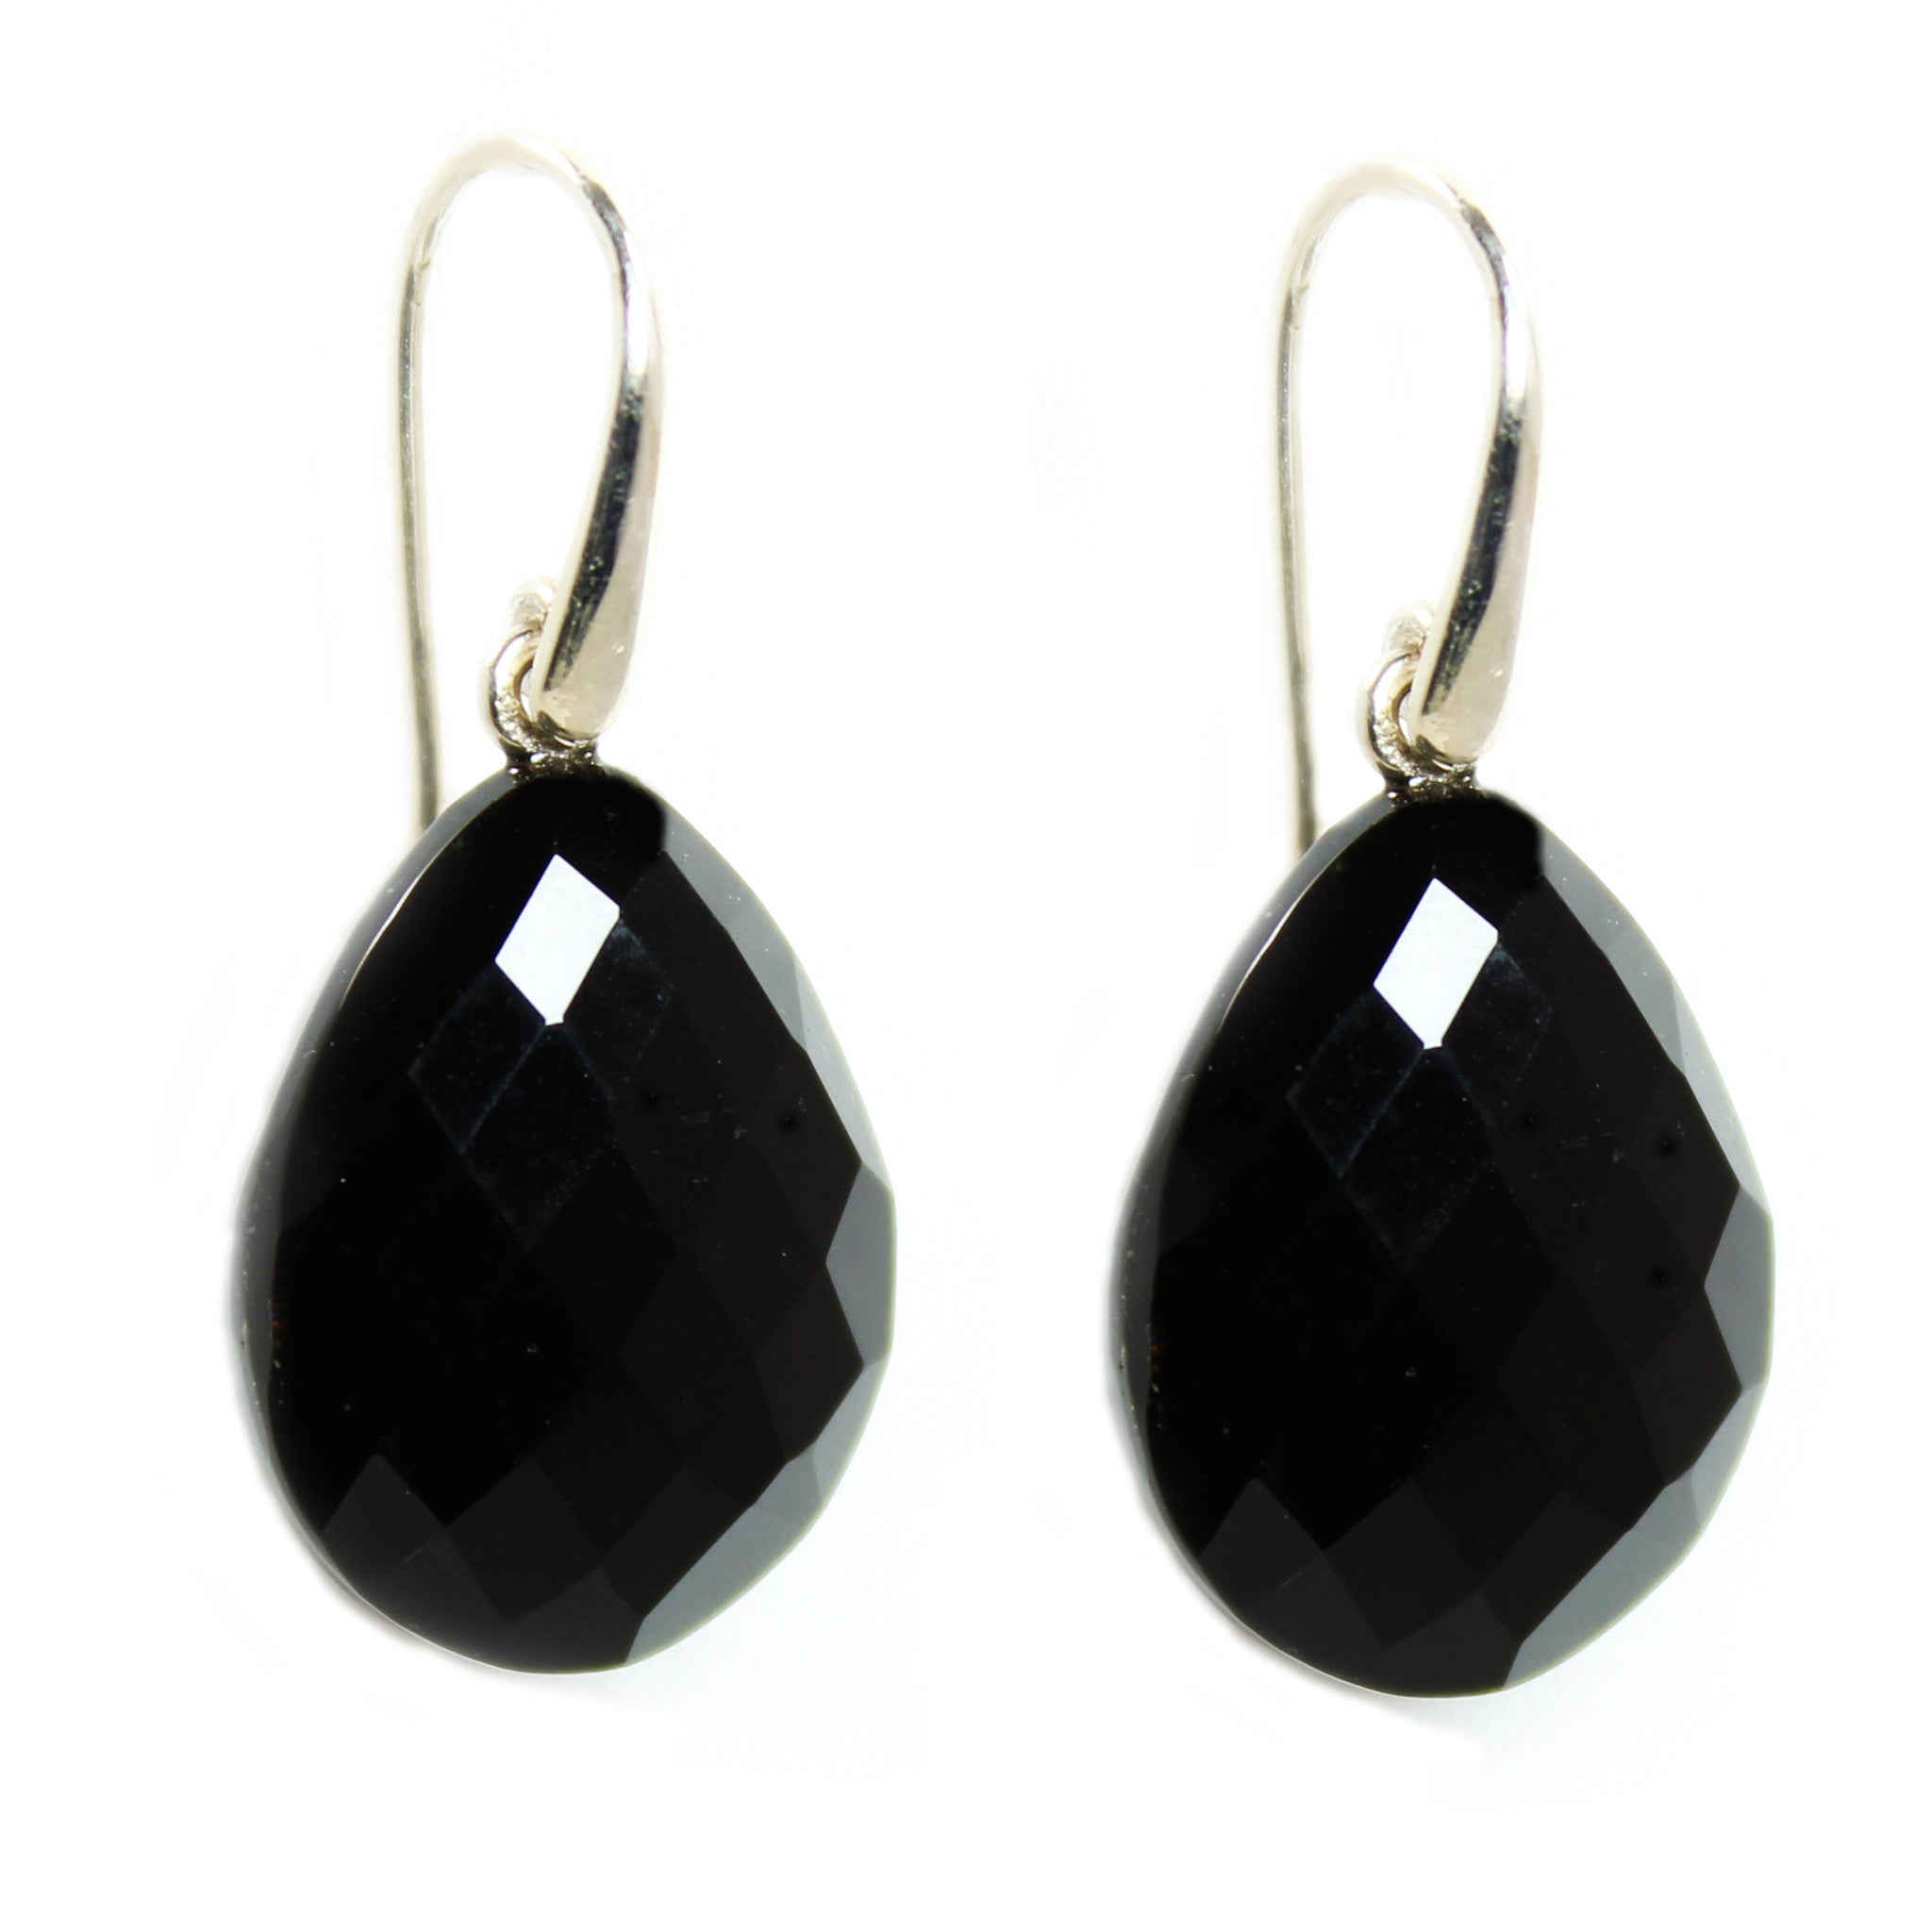 products from levin cropped front earrings onyx massachusetts image jewelry ed crafty by l black